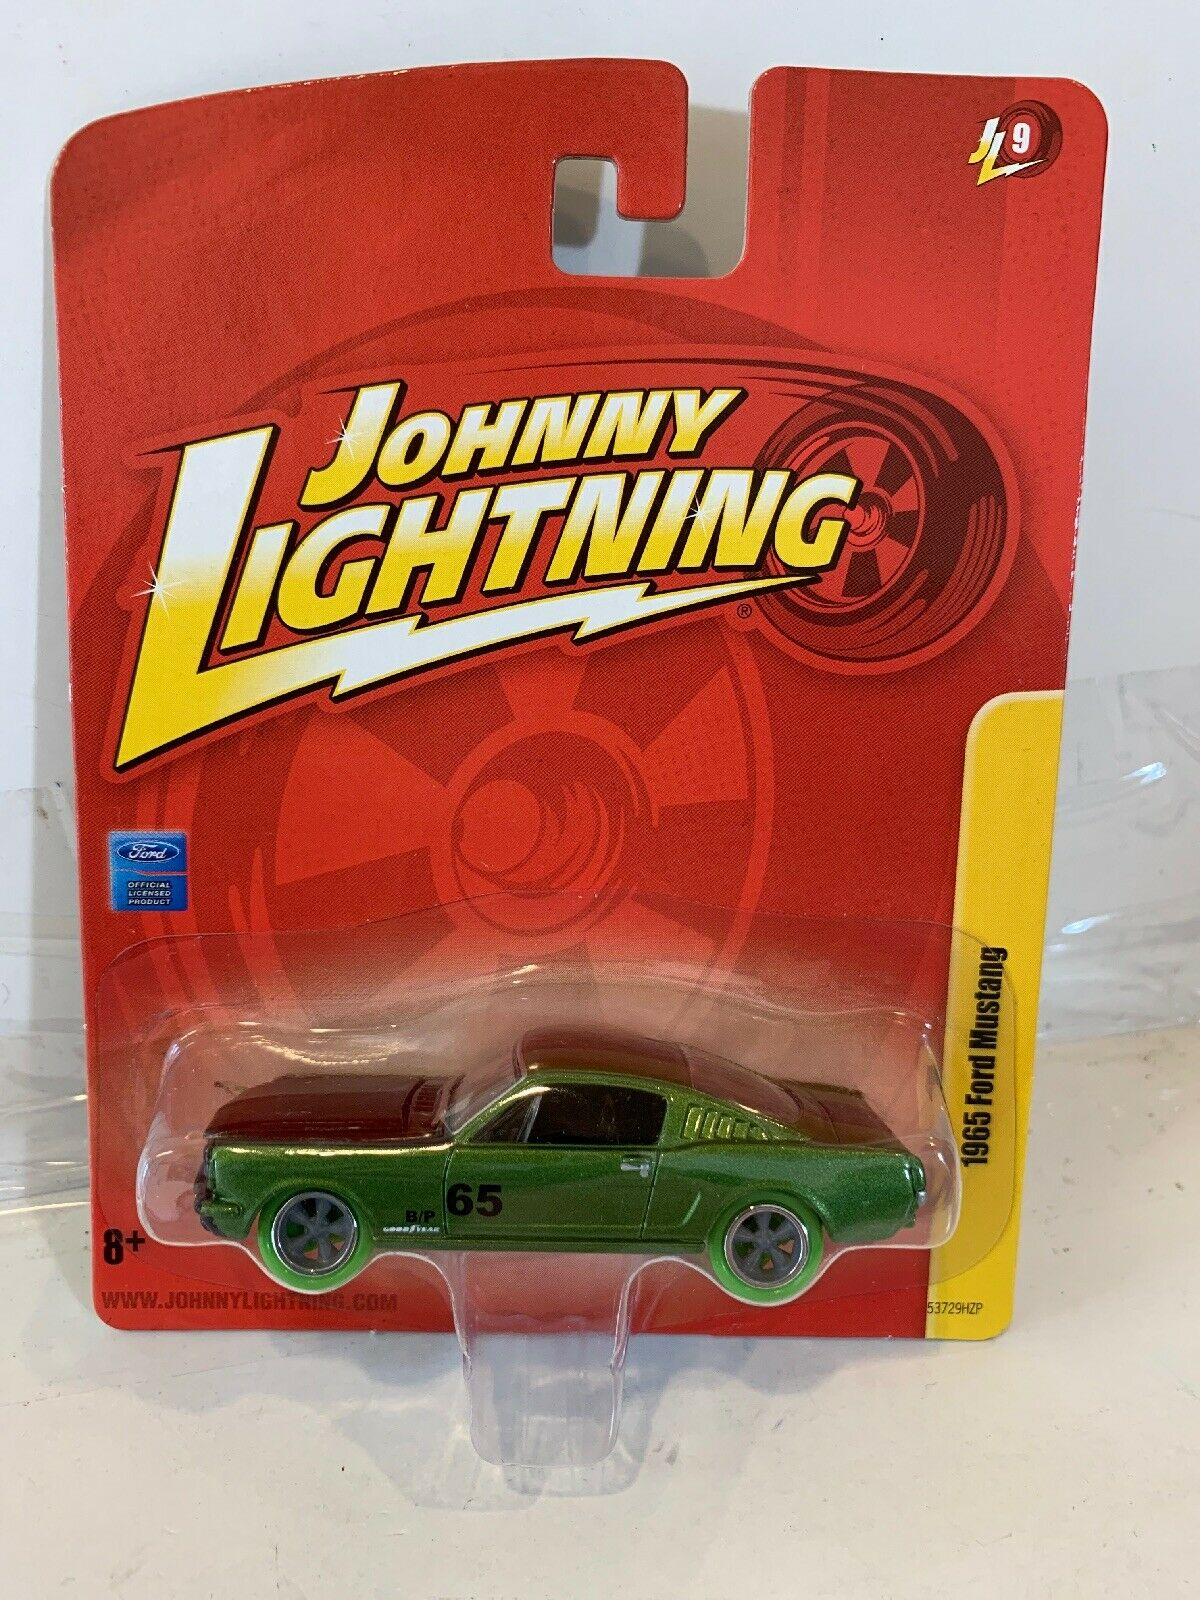 RARE JOHNNY LIGHTNING WHITE LIGHTNING STRIKE 1965 Ford Mustang Die Cast Car